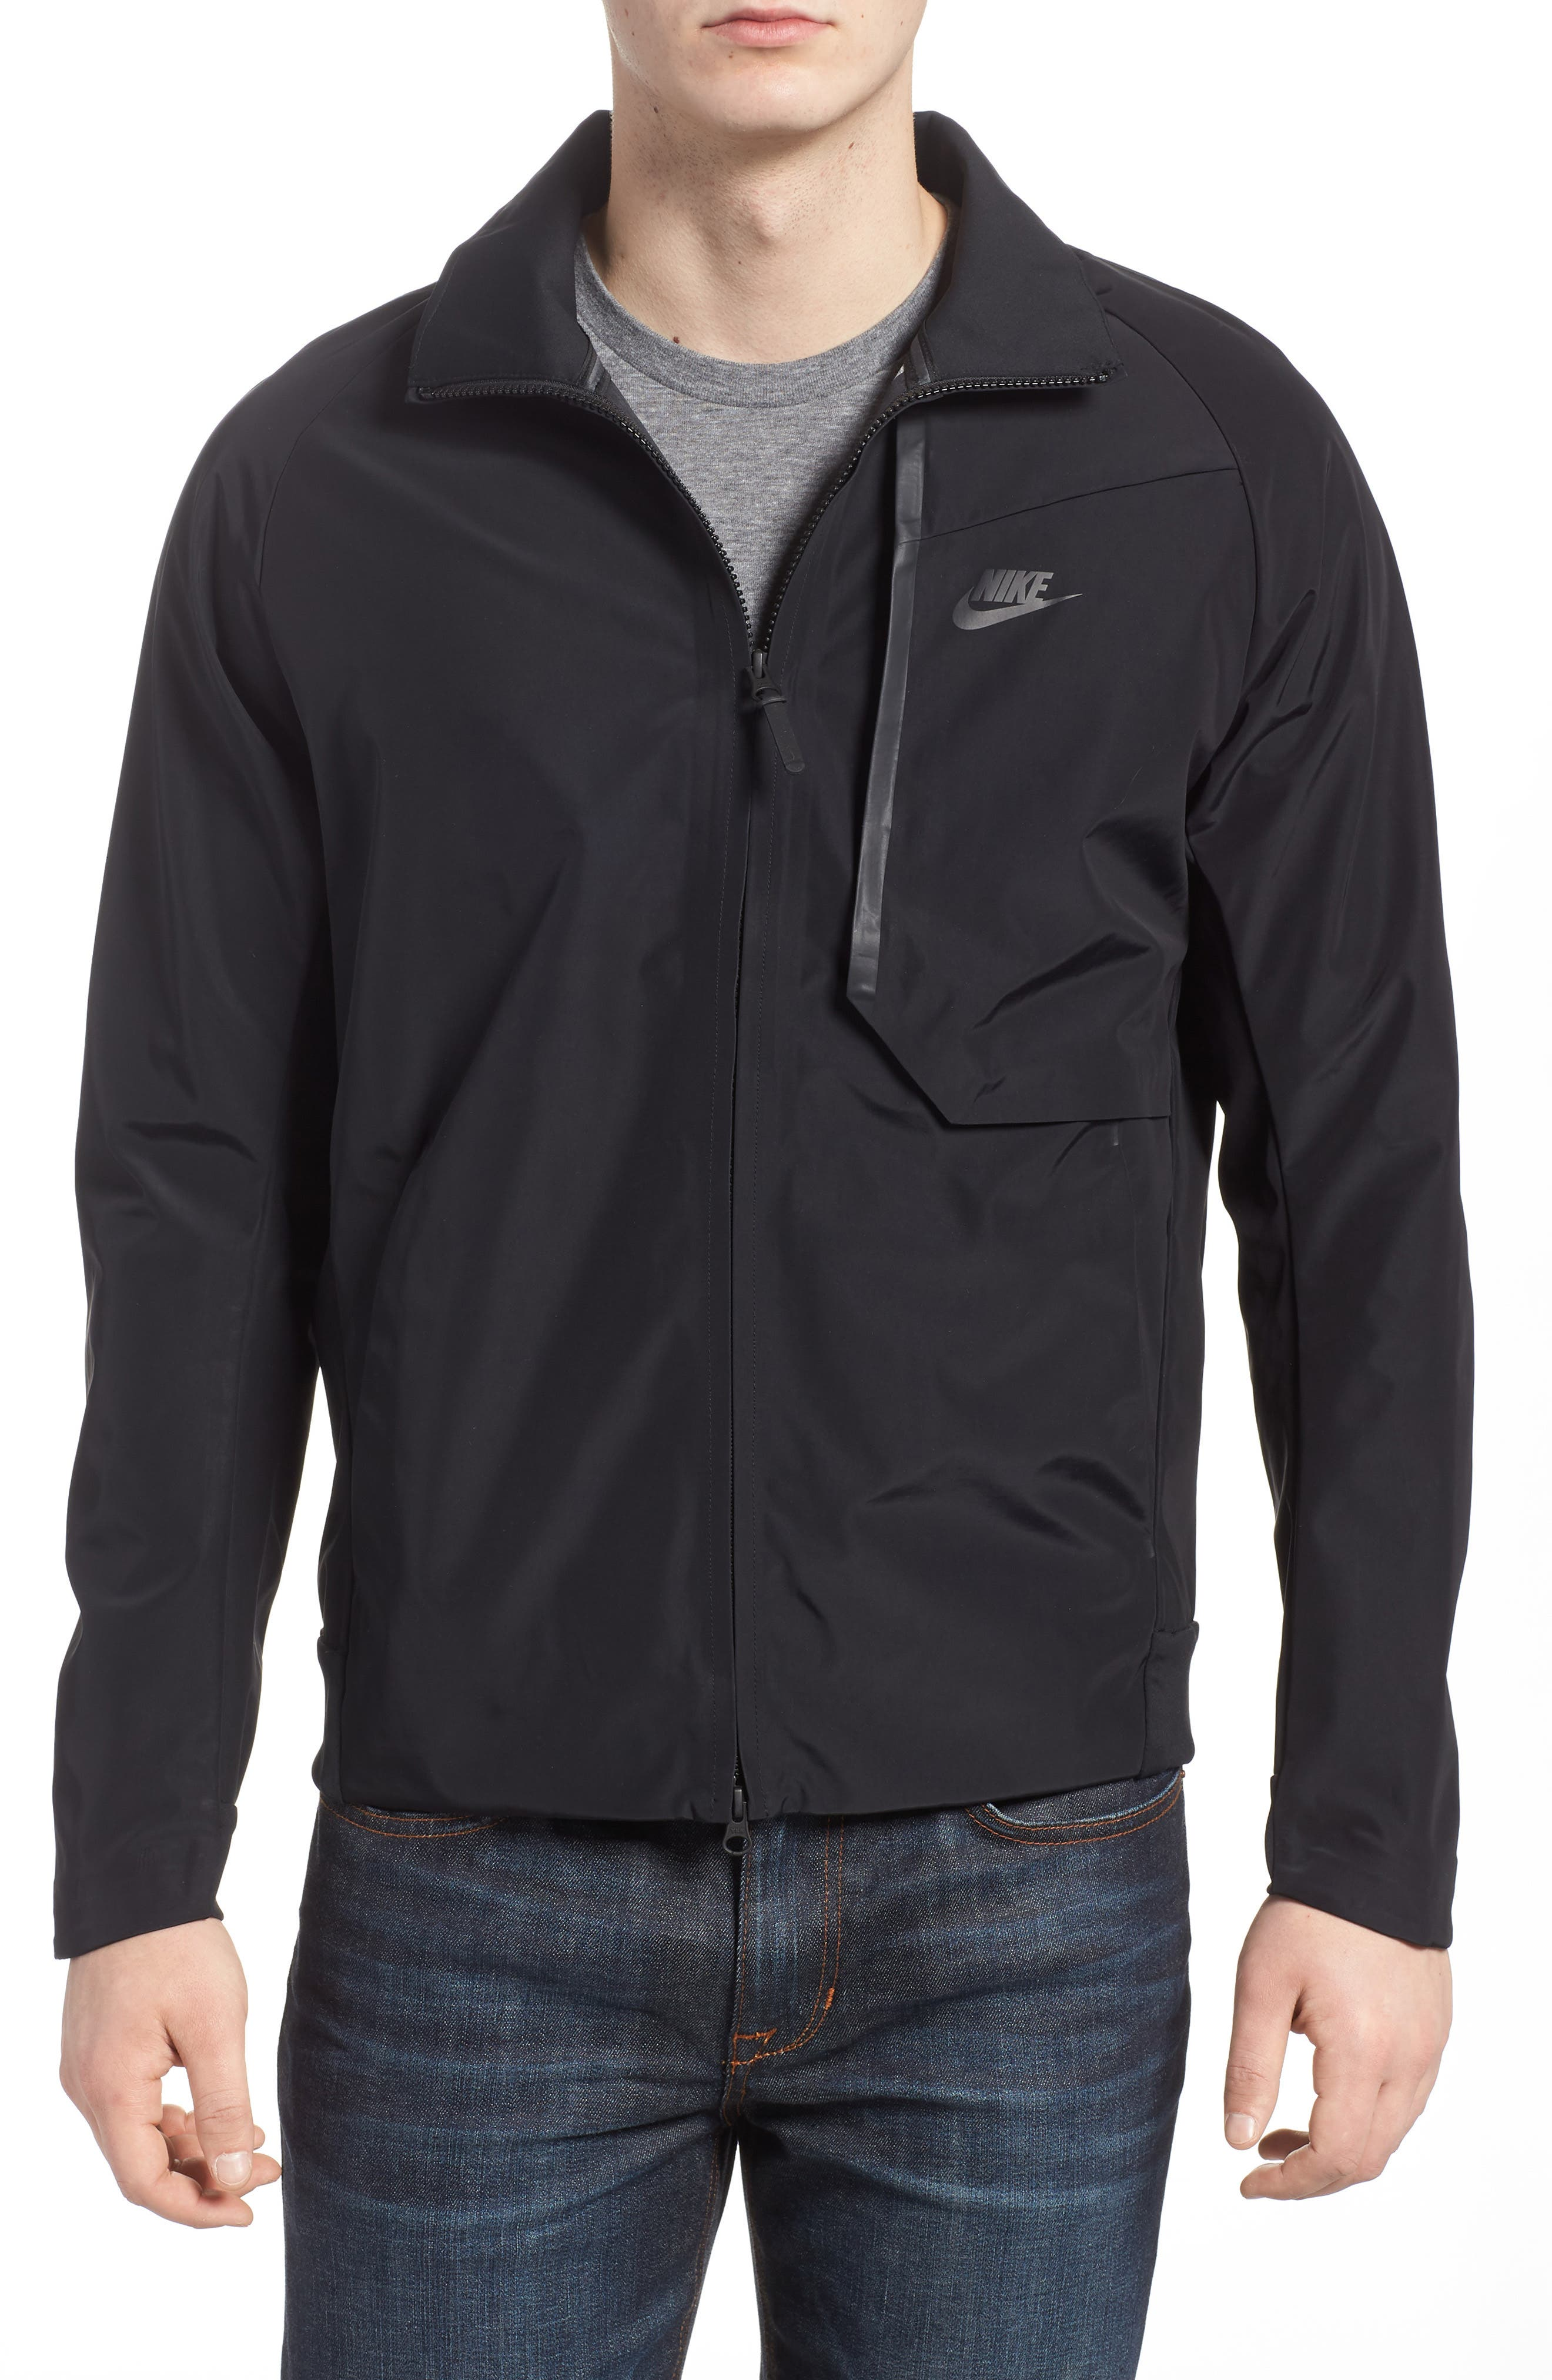 NSW Shield Jacket,                         Main,                         color, 010